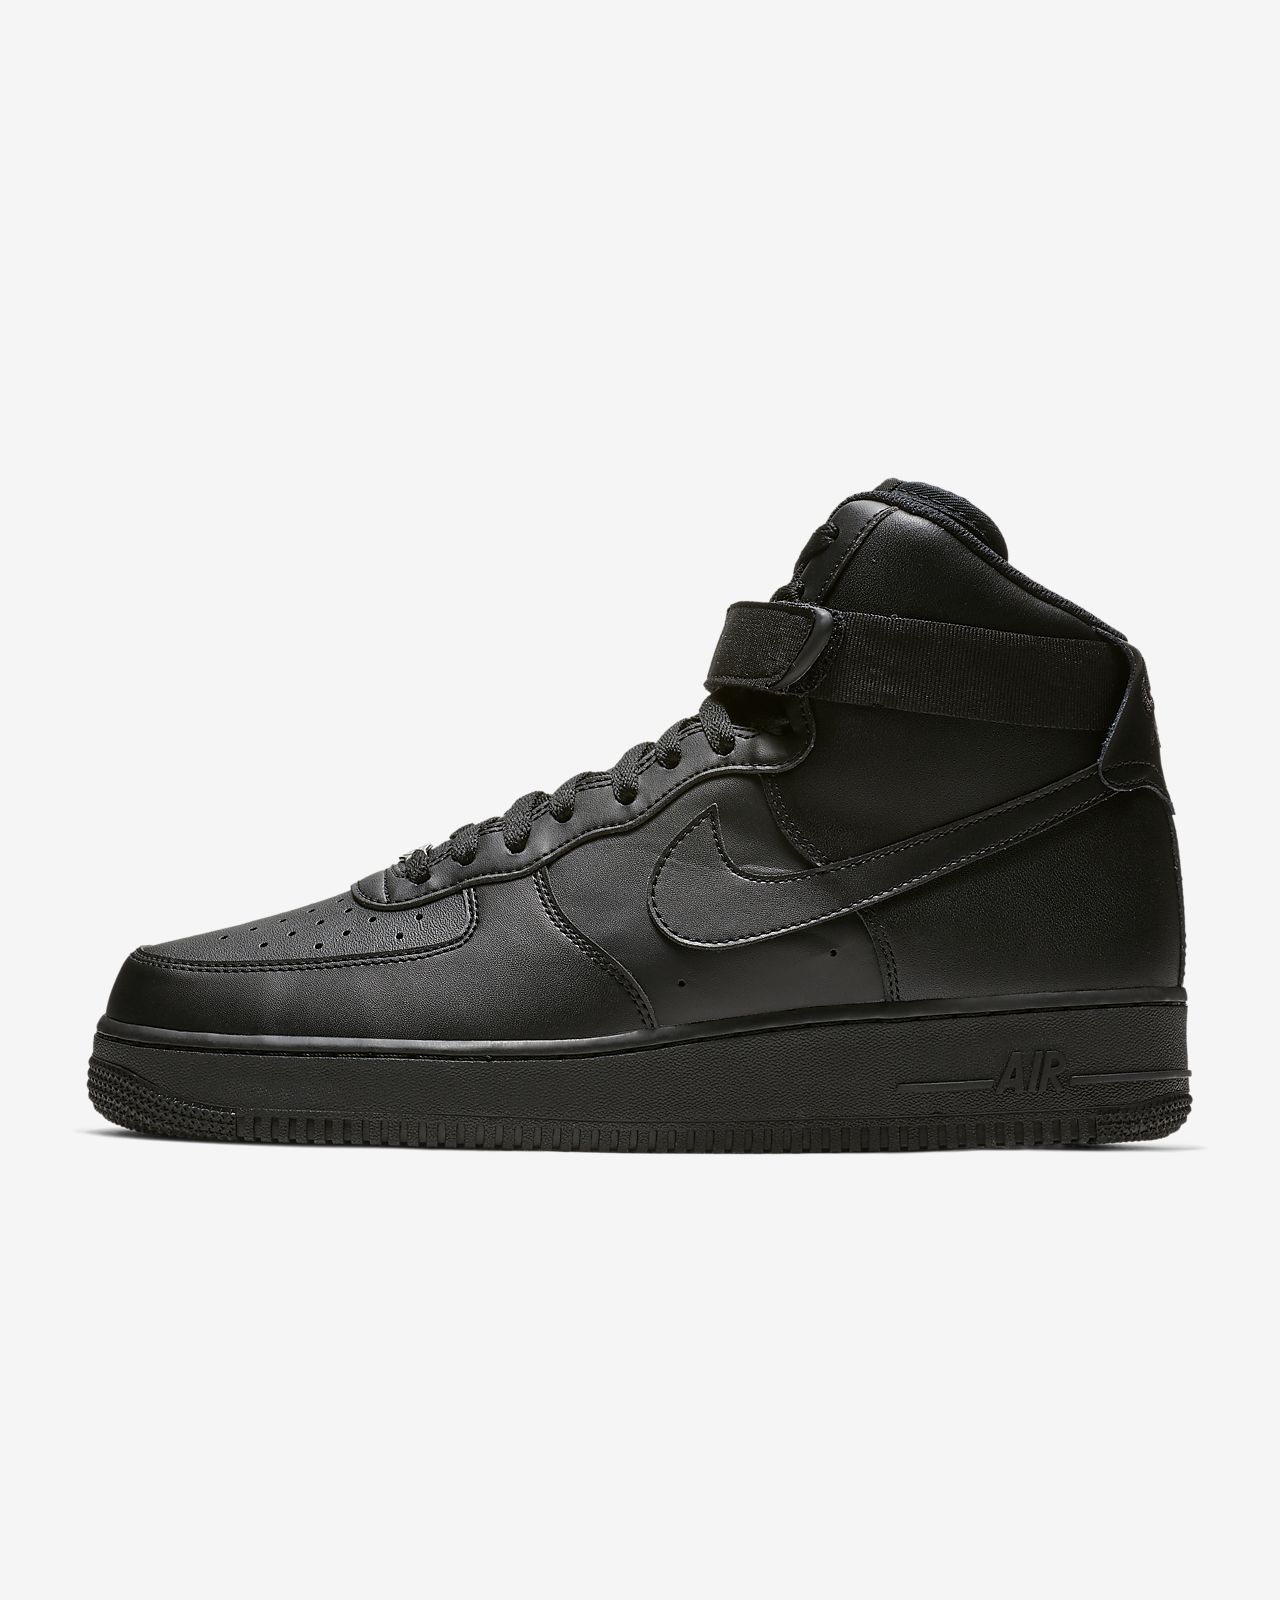 wholesale dealer 63a24 61d1f ... Nike Air Force 1 High 07 Mens Shoe